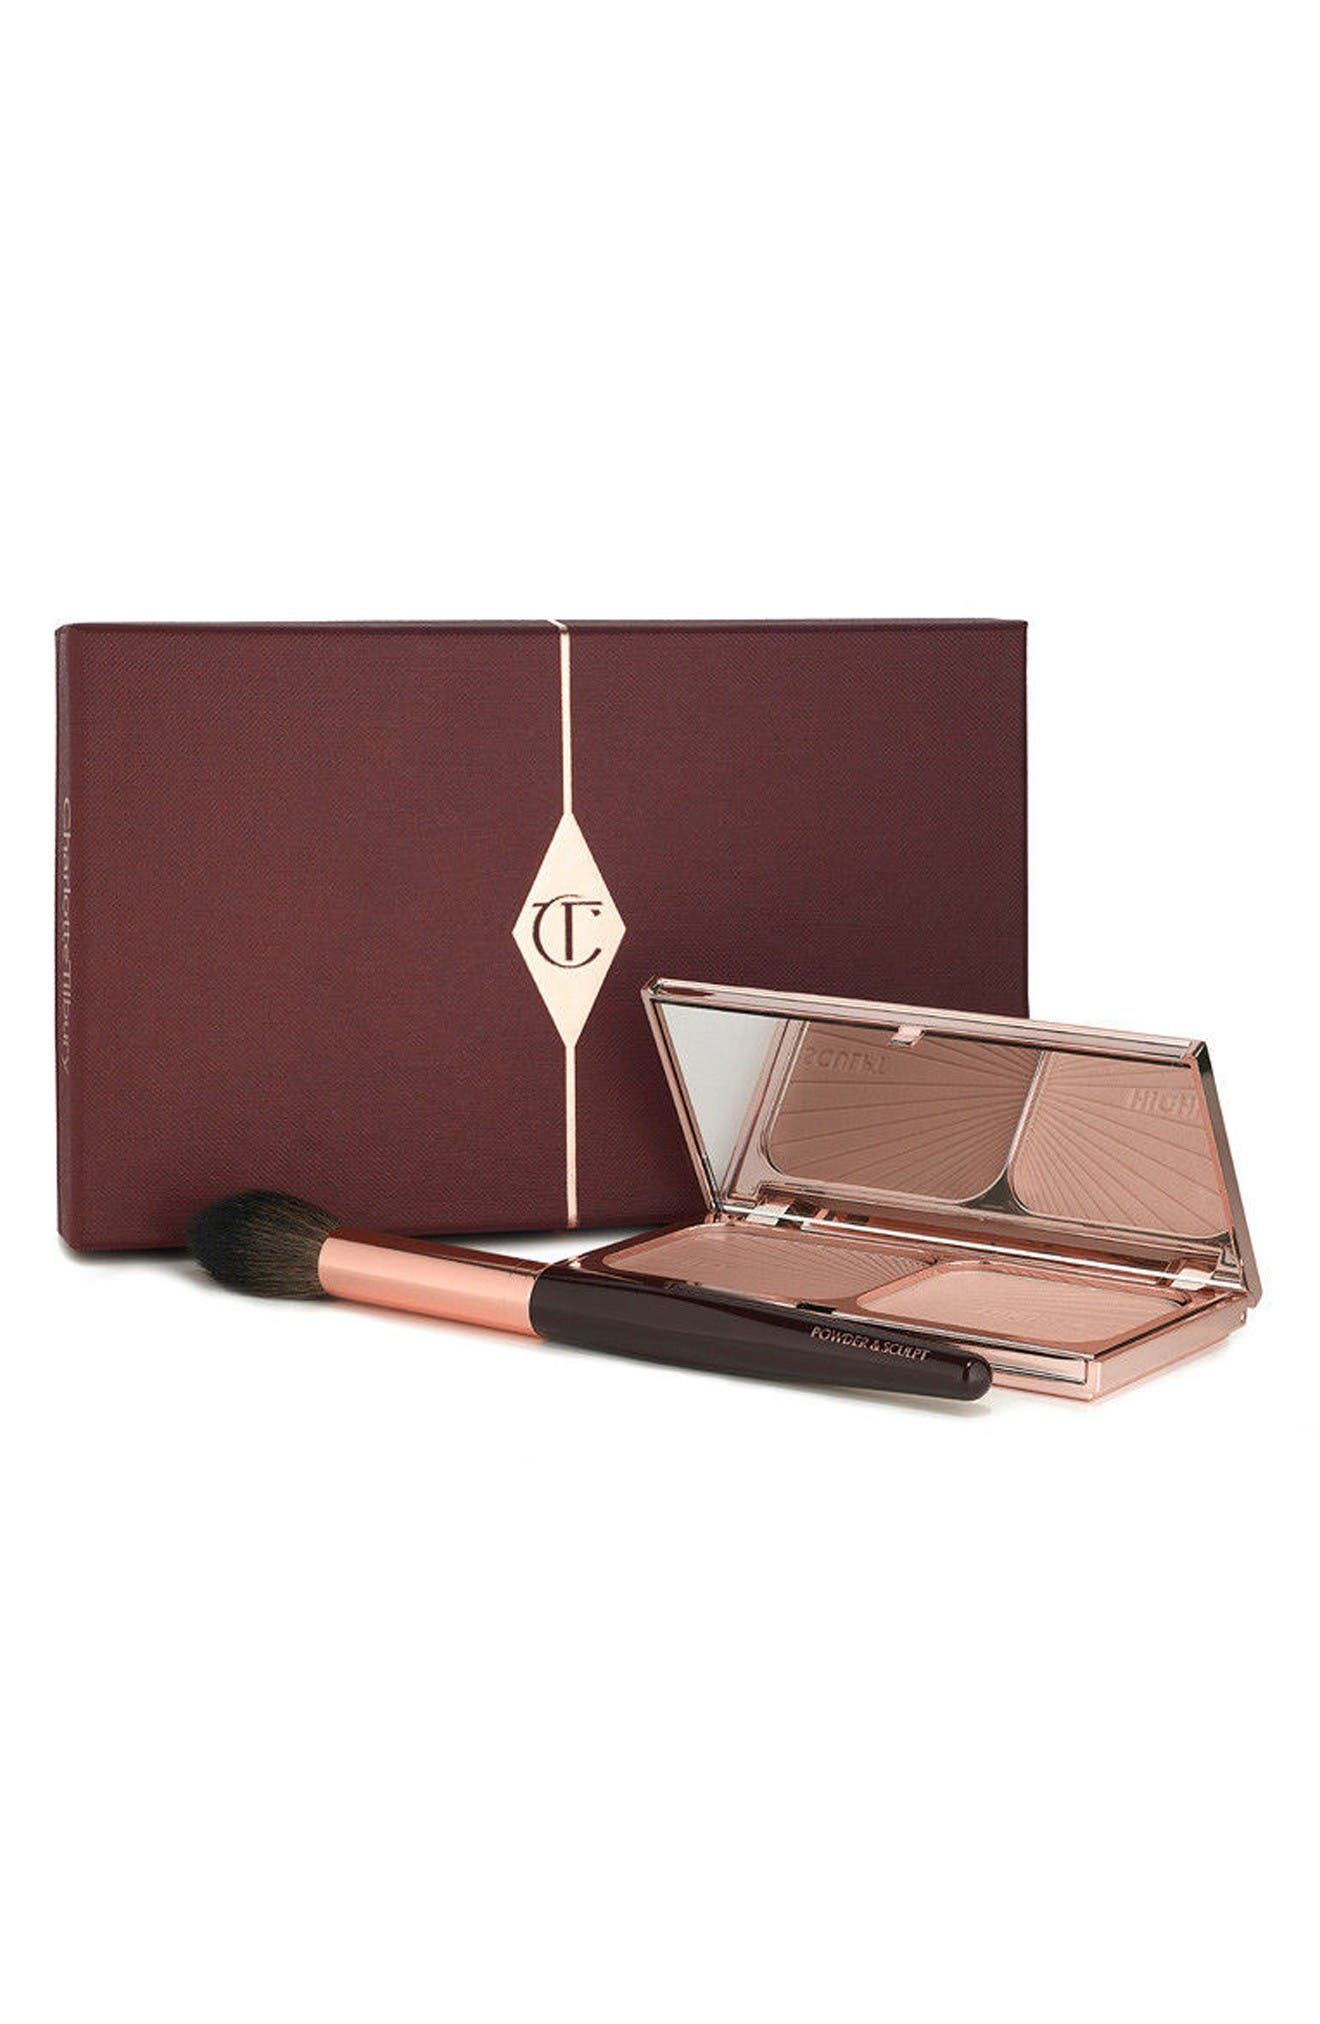 Alternate Image 3  - Charlotte Tilbury 'Filmstar Killer Cheekbones' Set